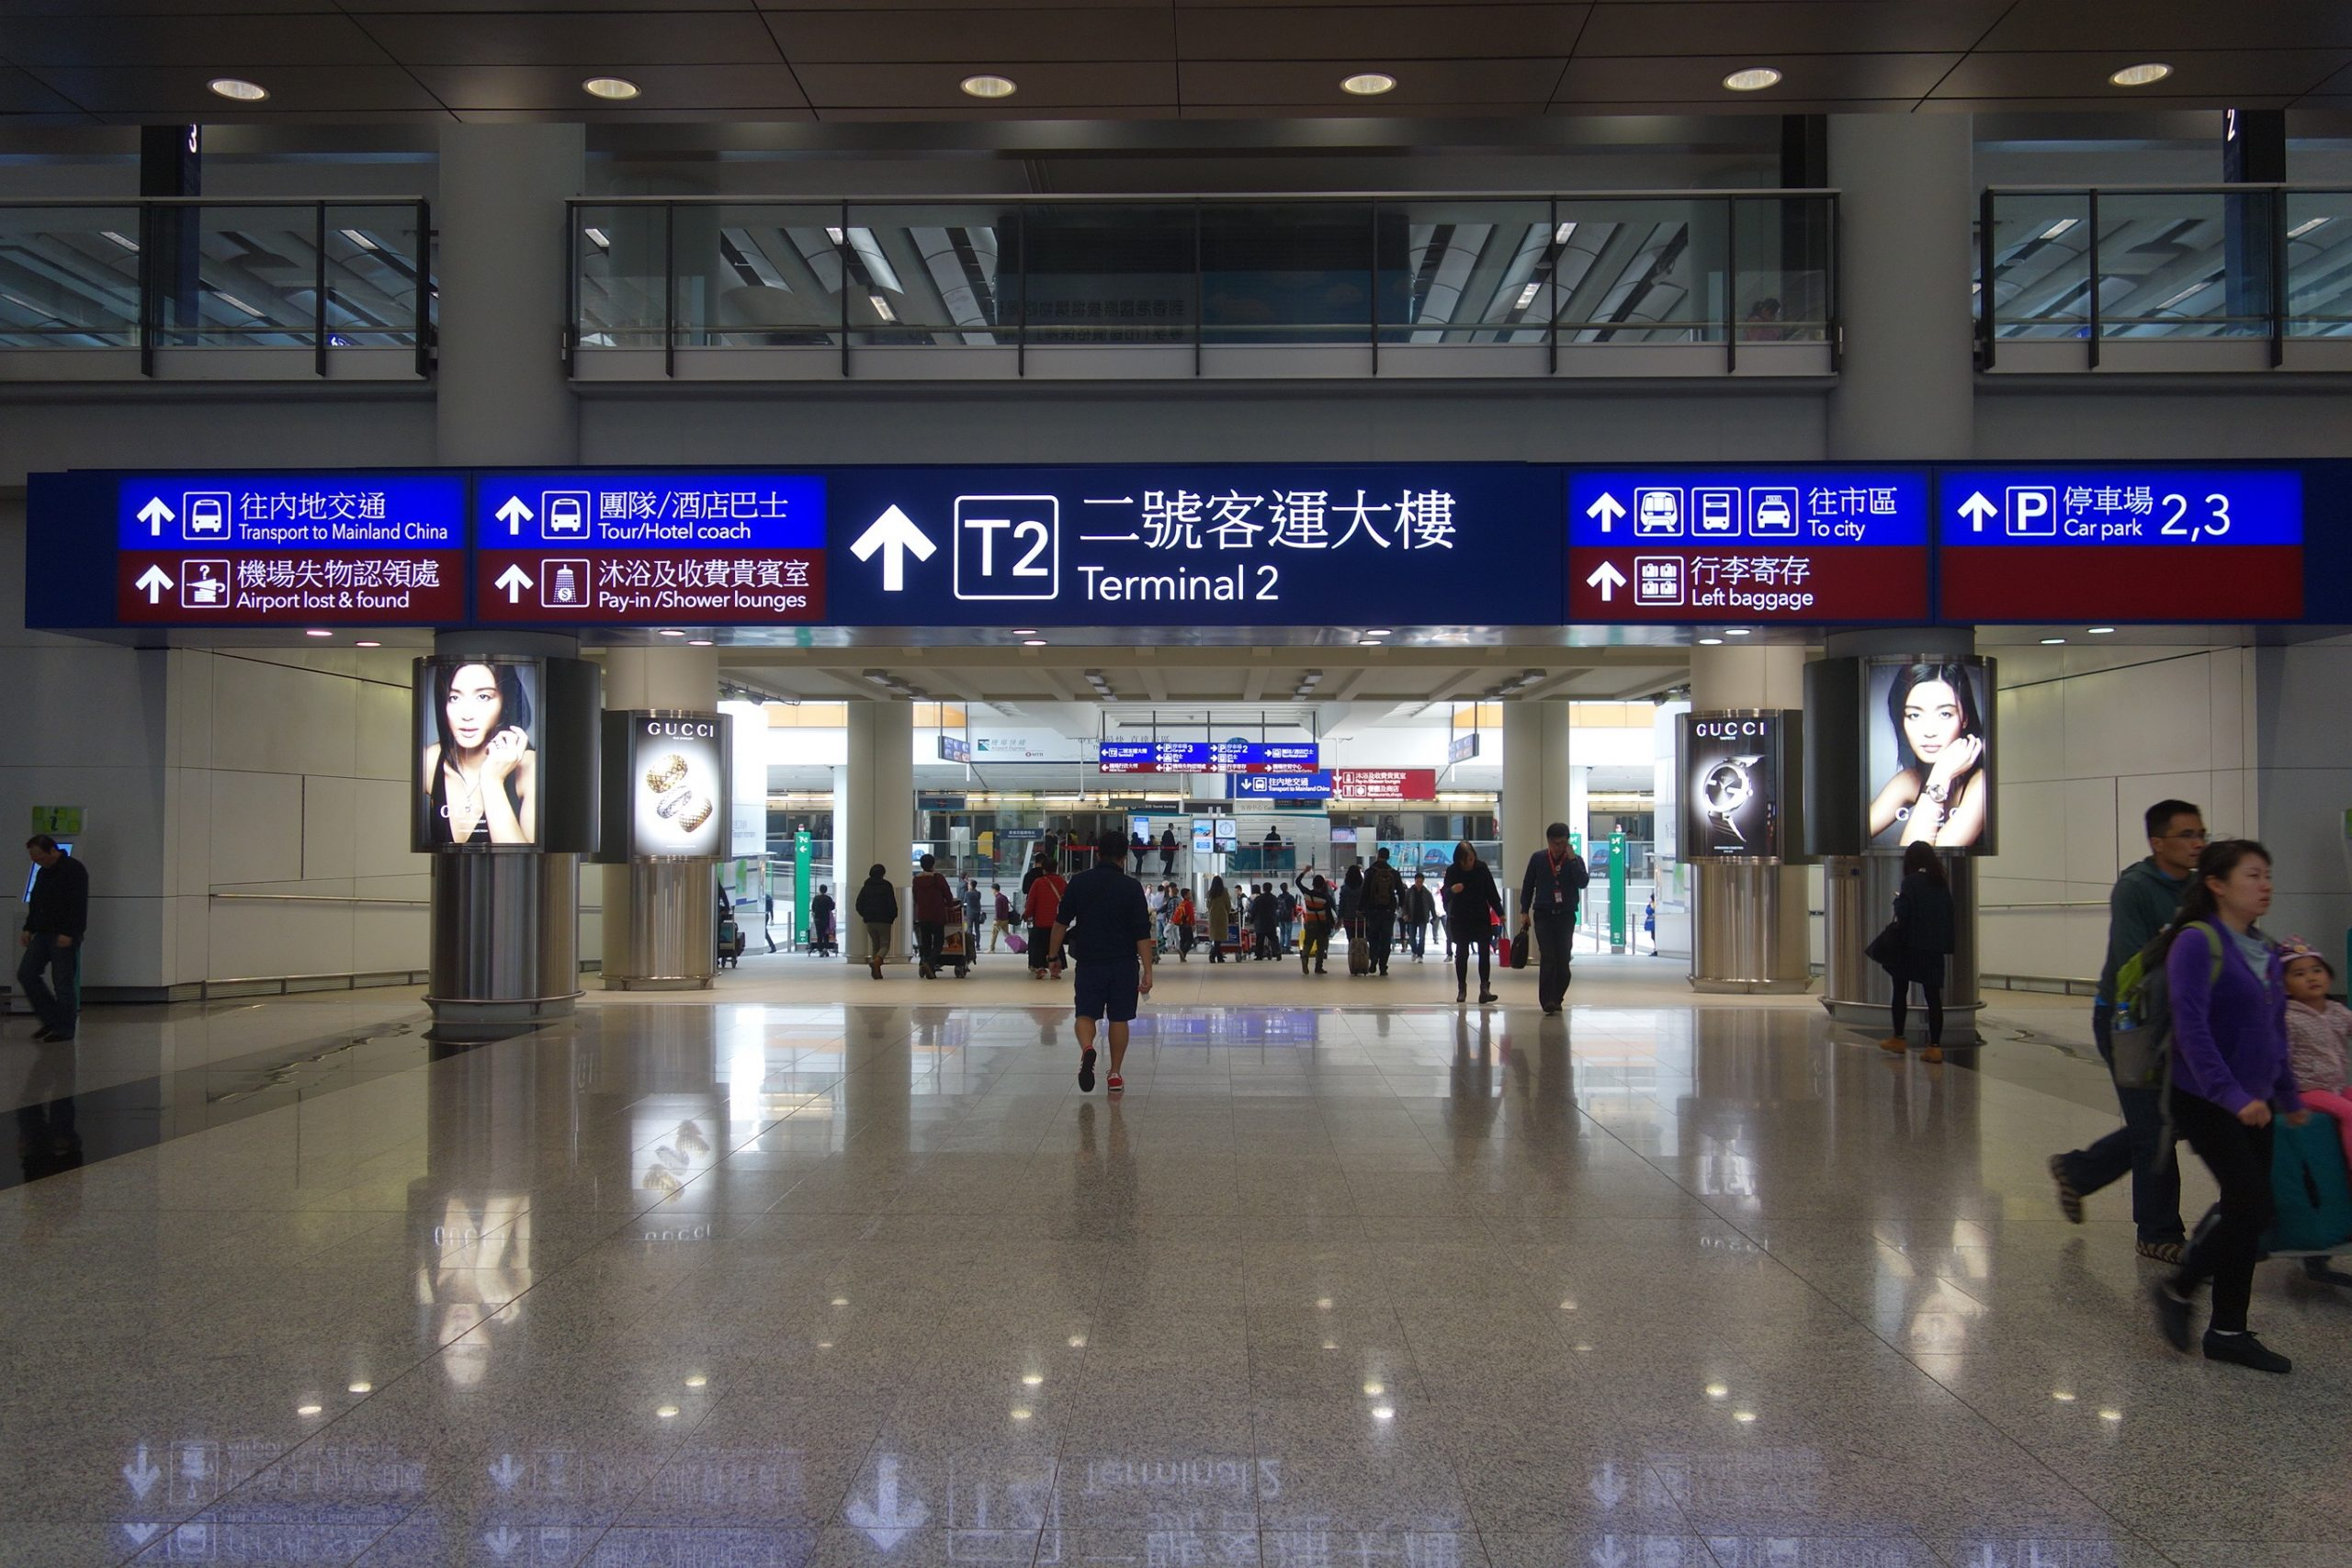 Student's travel requirements for flights back to Hong Kong and China